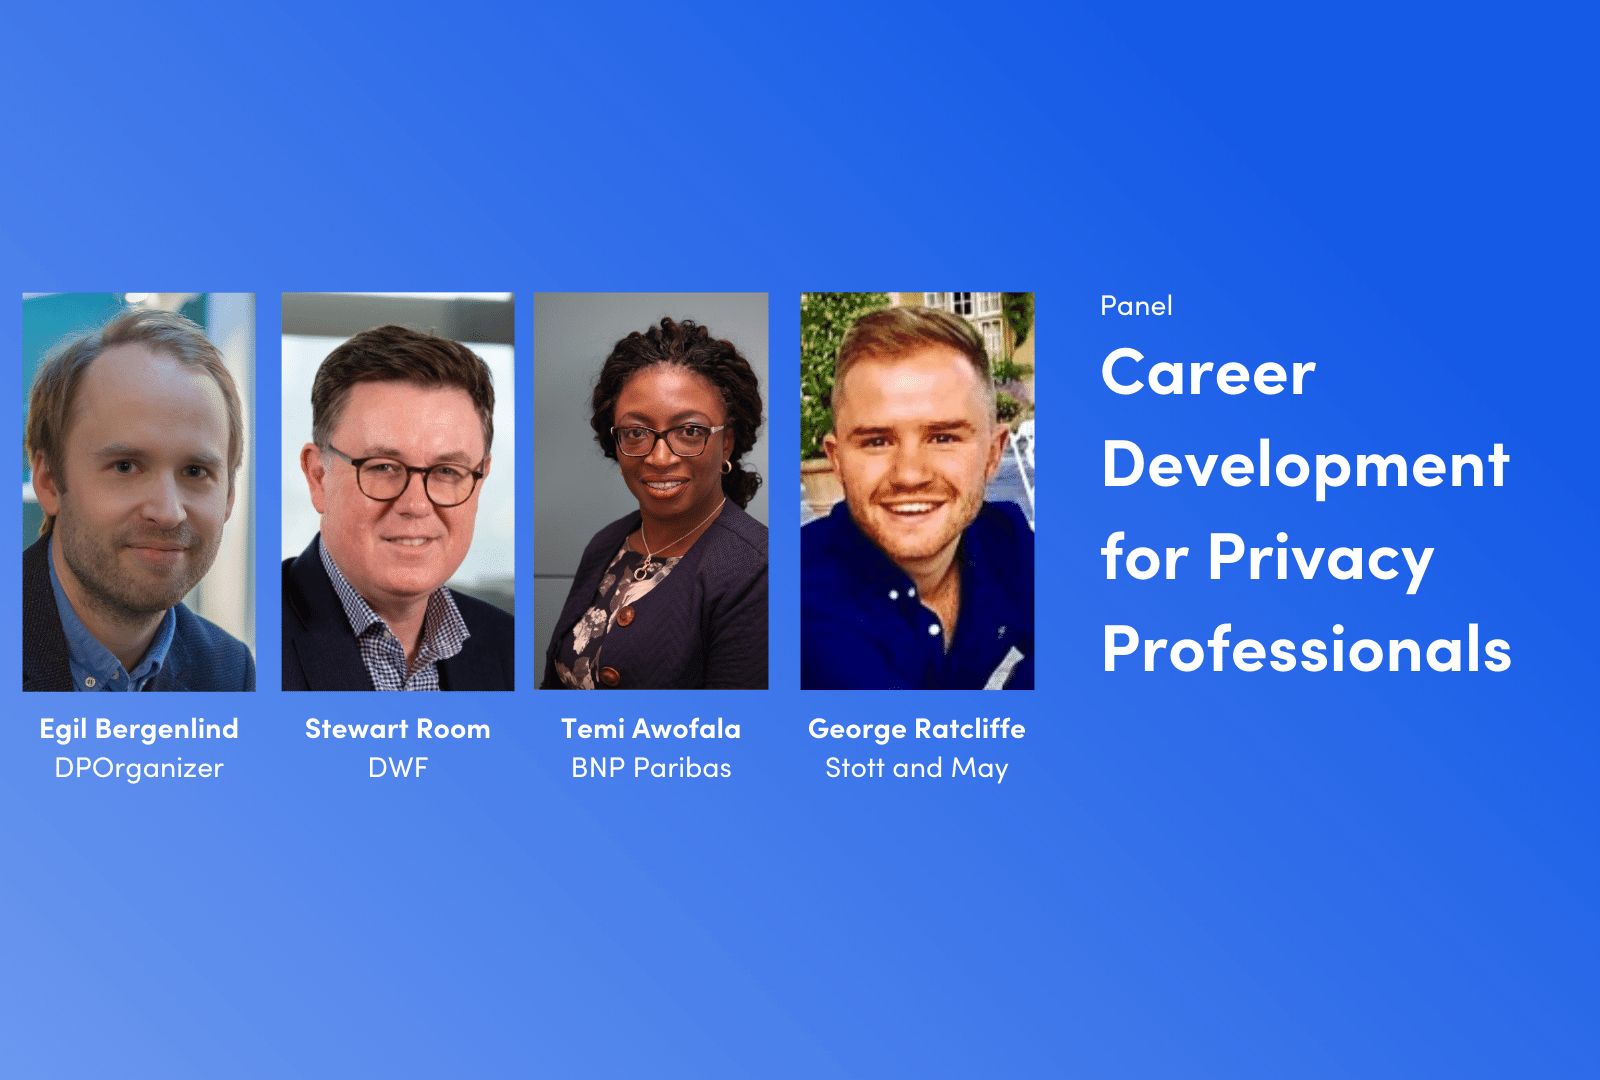 Career Development for Privacy Professionals